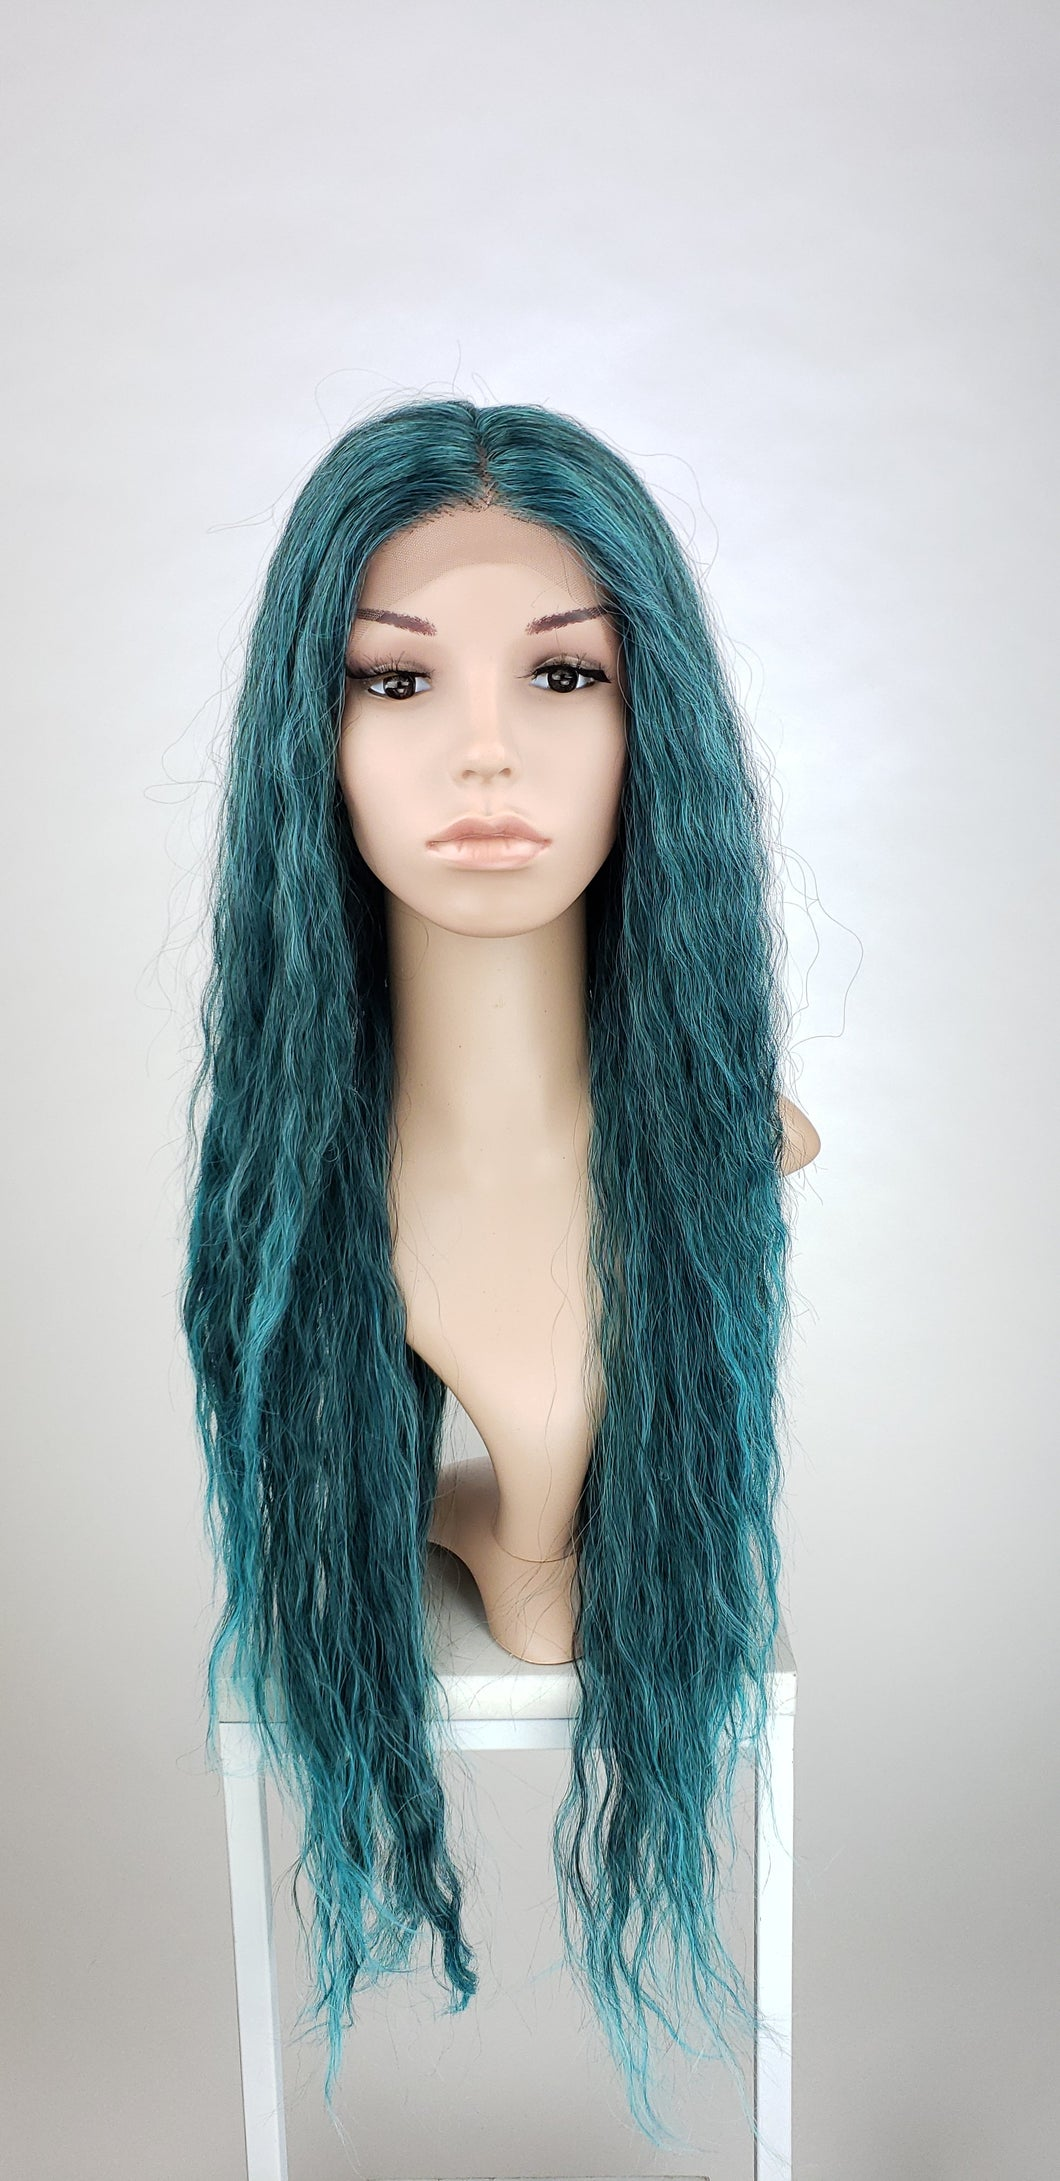 Pose Wigs Teal Green Ombre Long Curly Lace Front Wig - Duchess Series LDRVN88